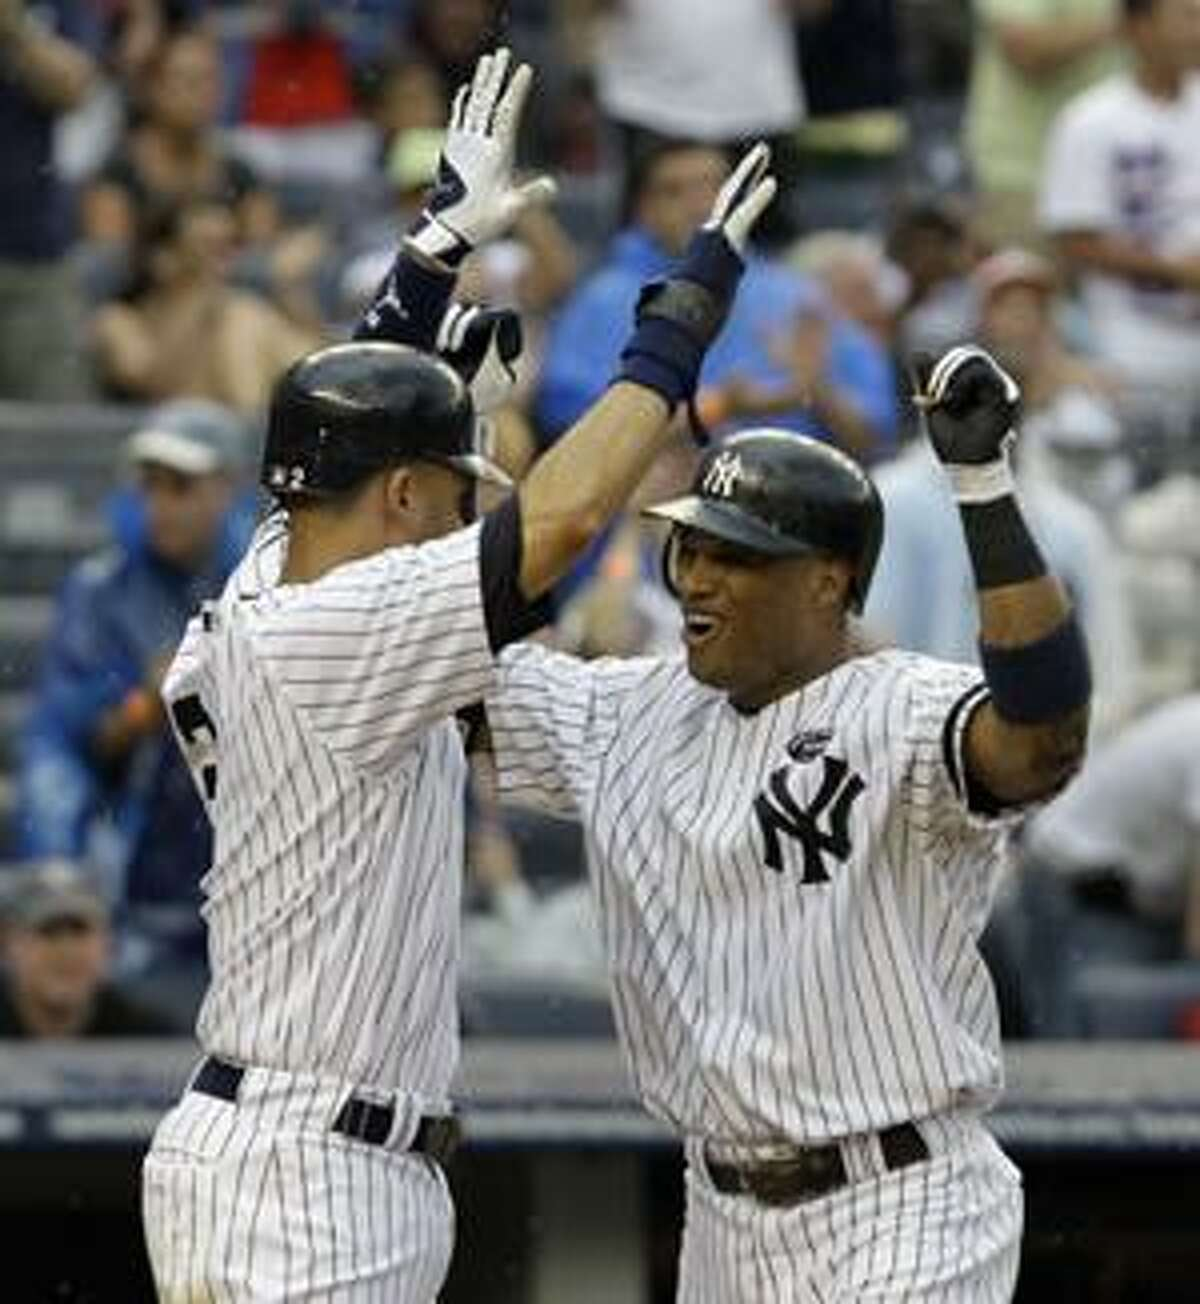 New York Yankees' Derek Jeter, left, greets teammate Robinson Cano, right, at the plate after Cano's fifth-inning grand slam off Seattle Mariners starting pitcher Luke French during a baseball game at Yankee Stadium on Sunday, Aug. 22, 2010, in New York. (AP Photo/Kathy Willens)